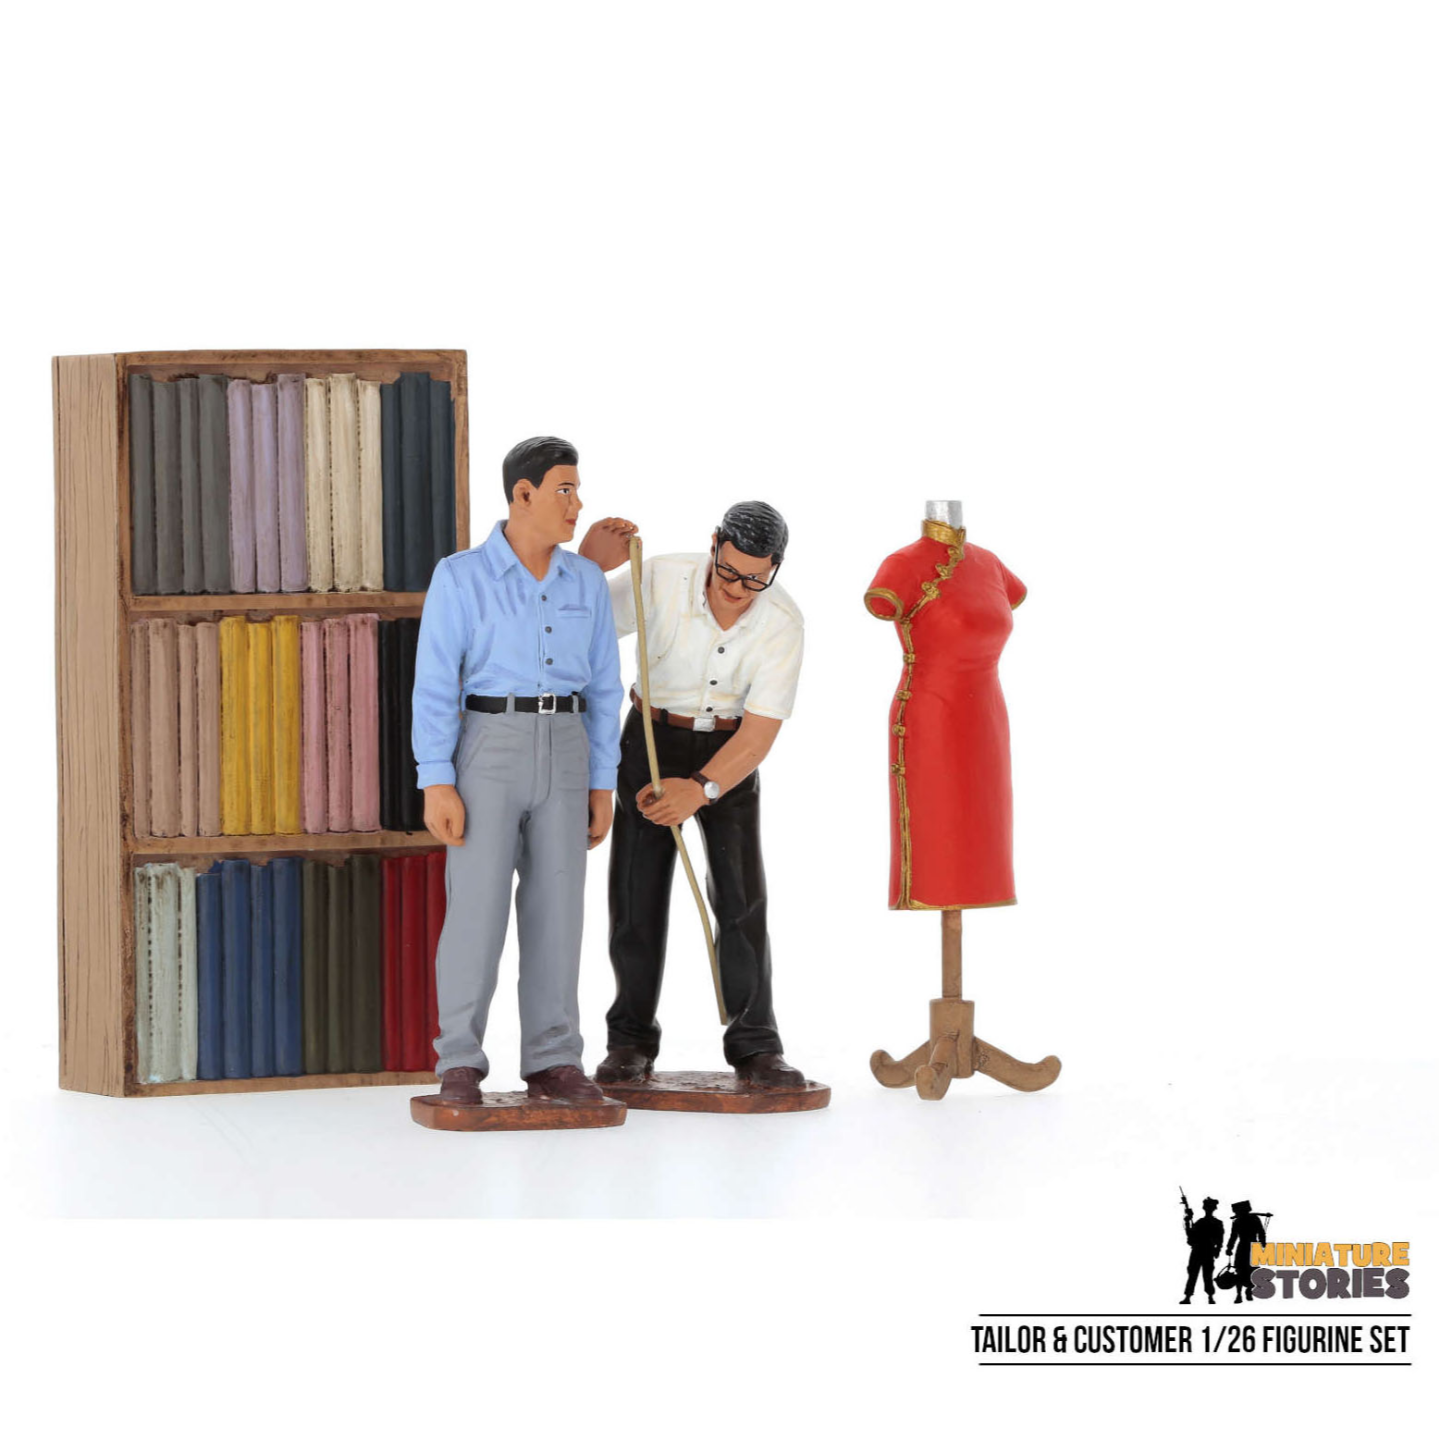 Tailor and Customer Figurine Set